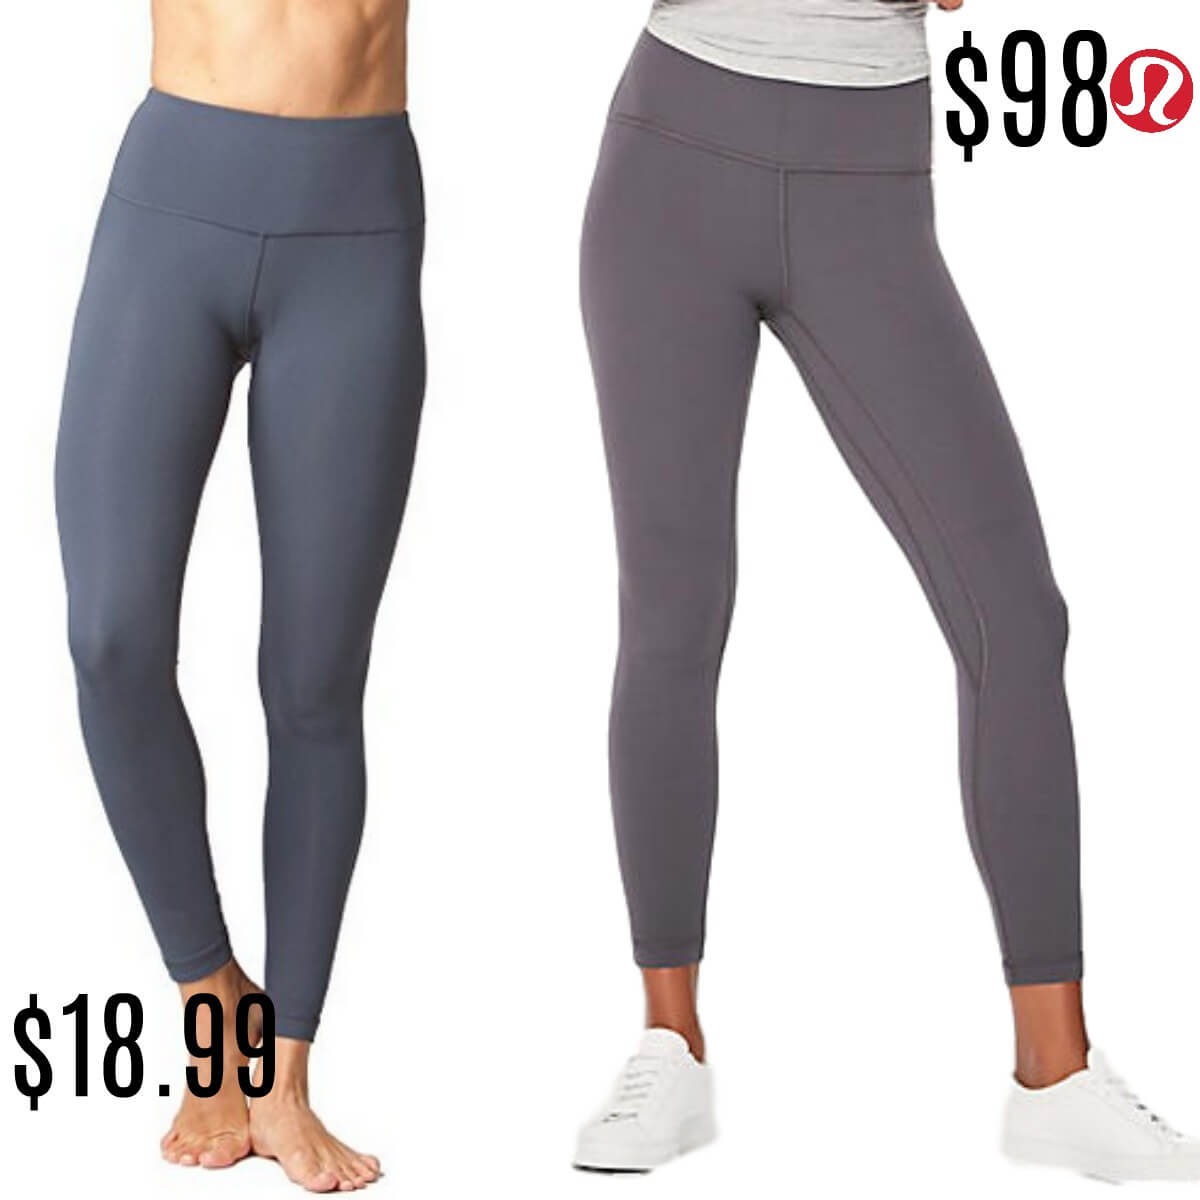 b5cd4f8469a41 LuluLemon Dupes That Will Shock You, They Are That GoodLiving Rich ...